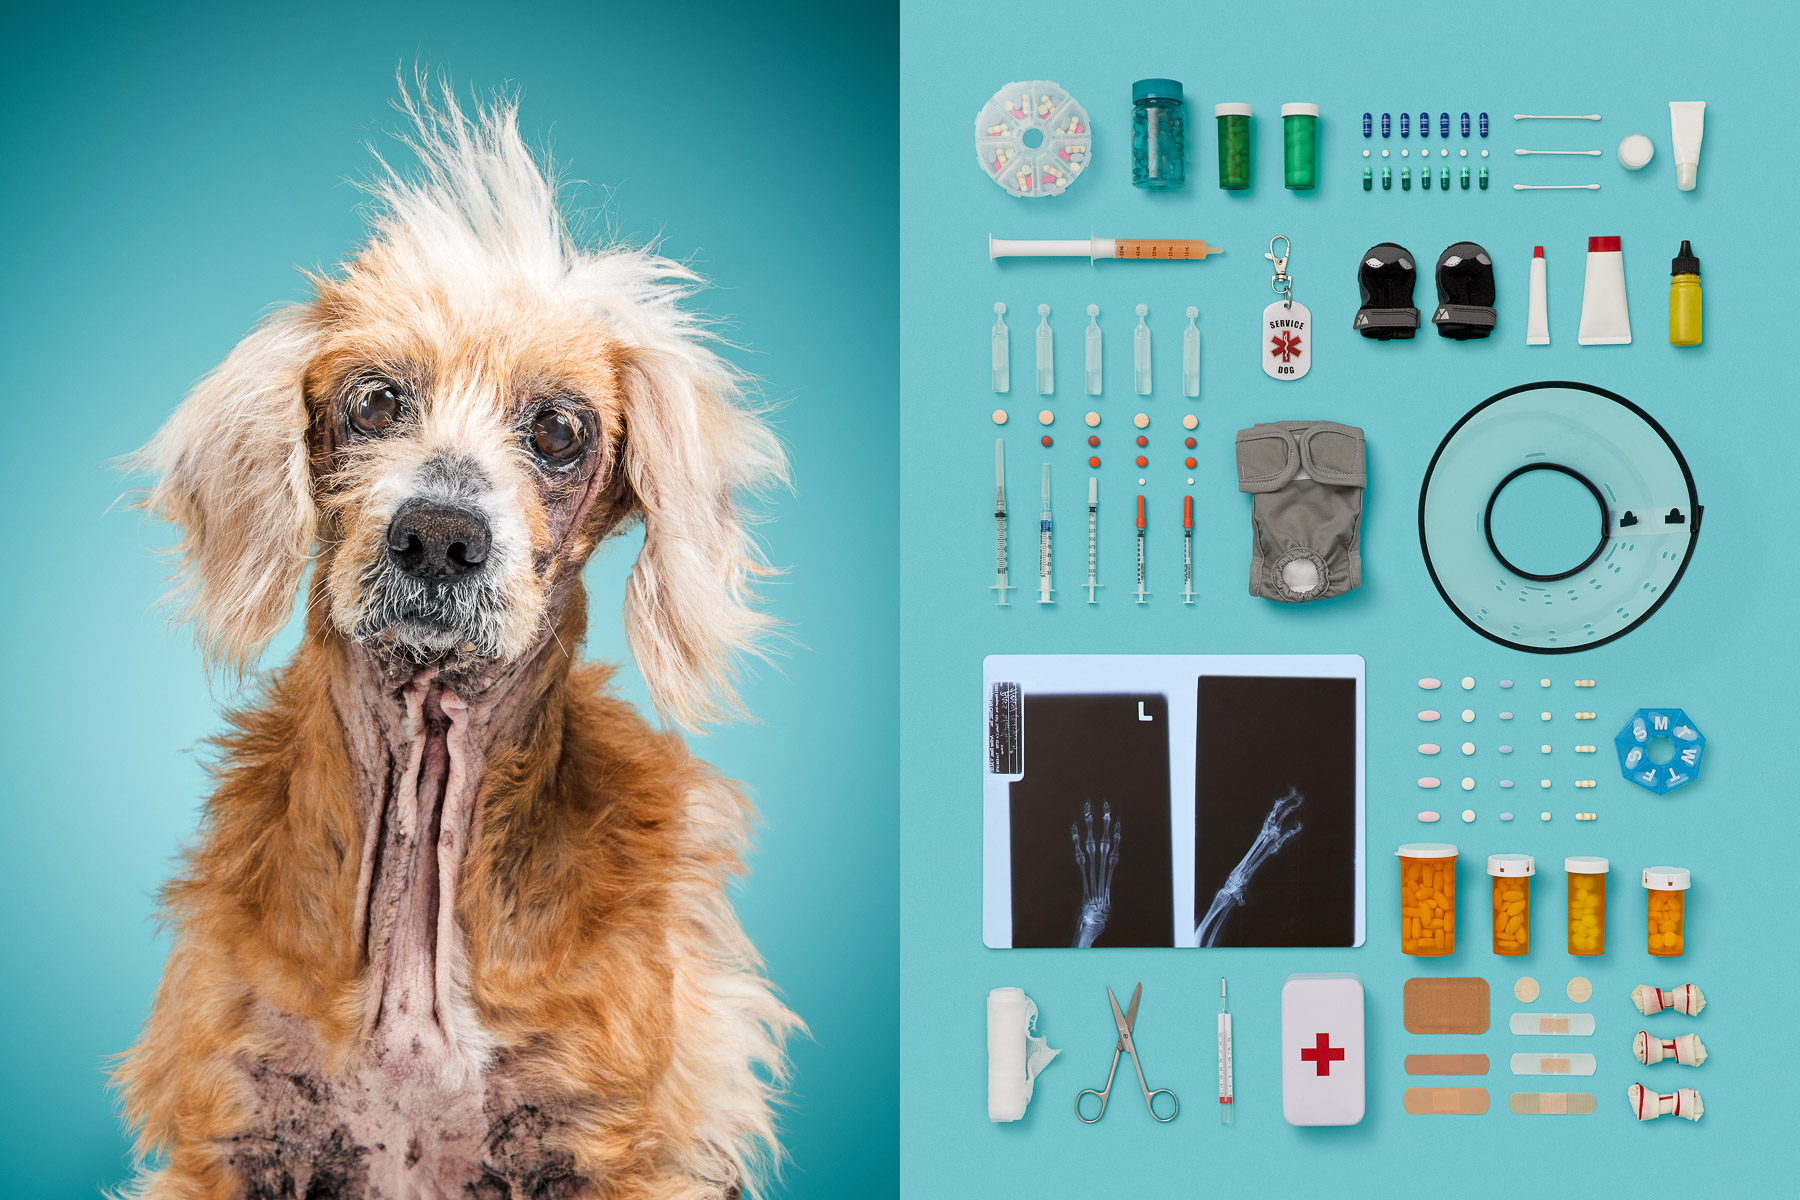 Old-senior-series-dog-portraits-knolling-medical-pills-objects-animal-photographer.jpg